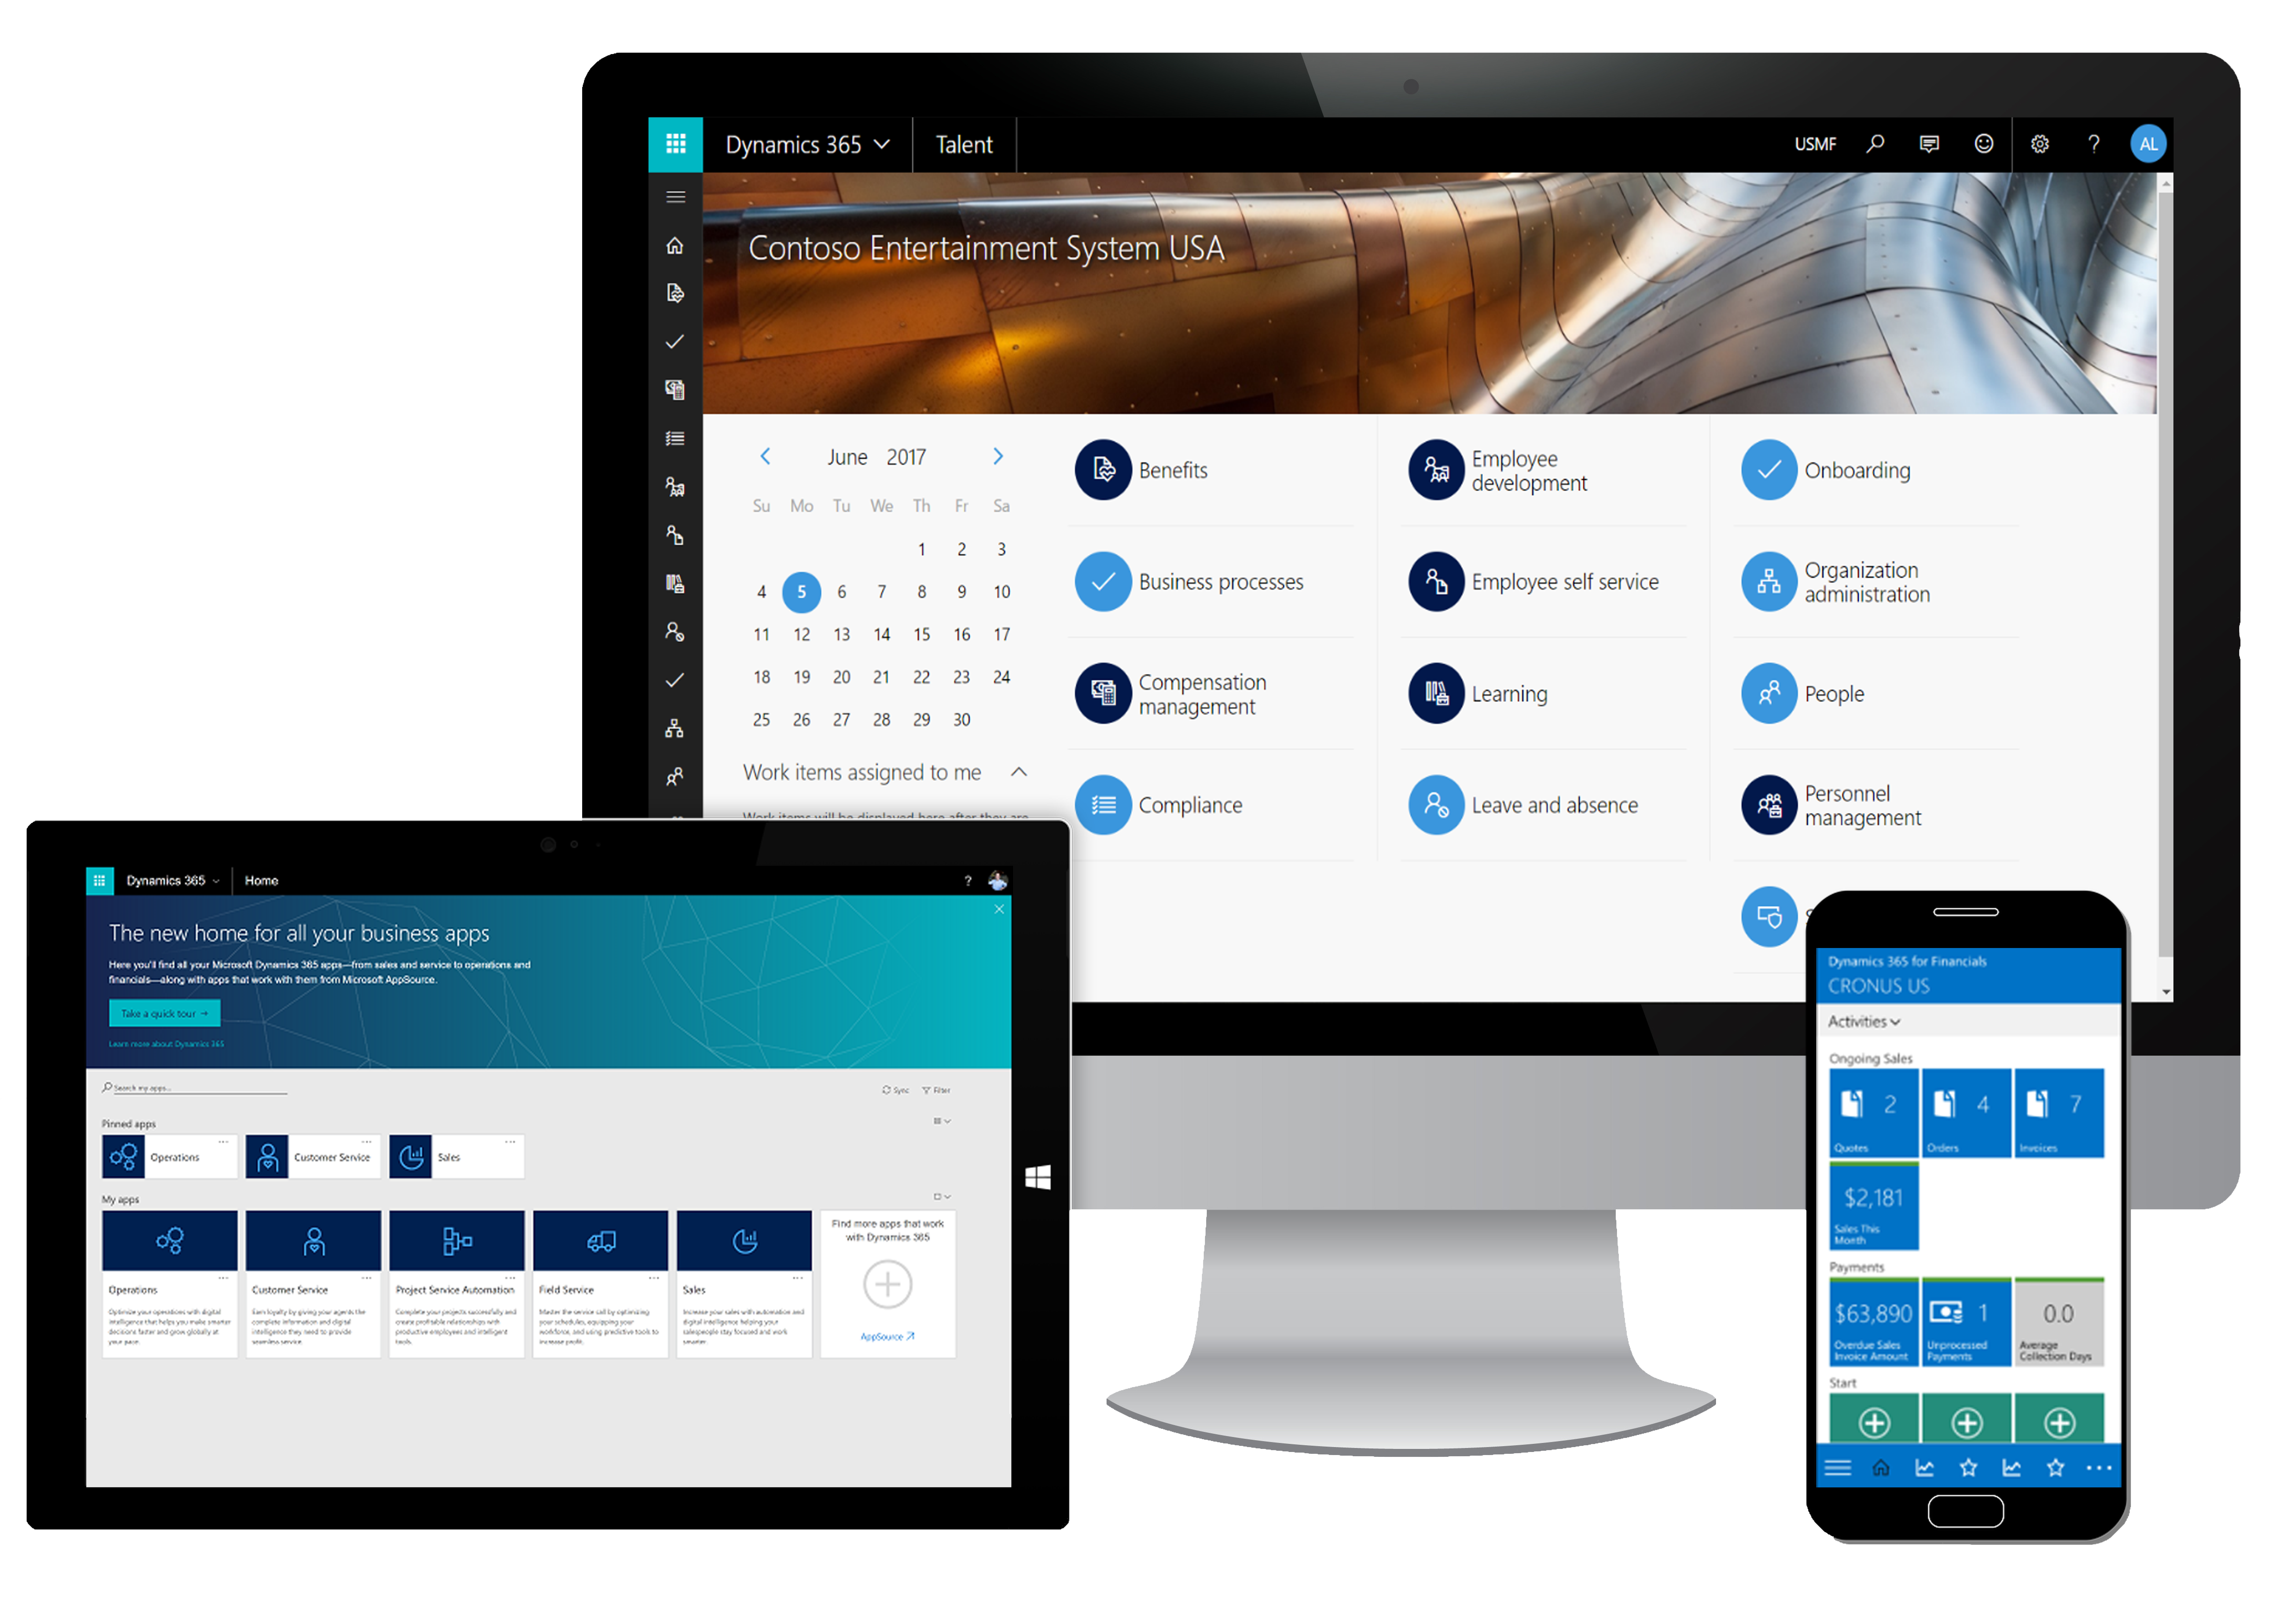 Microsoft Dynamics 365 on devices